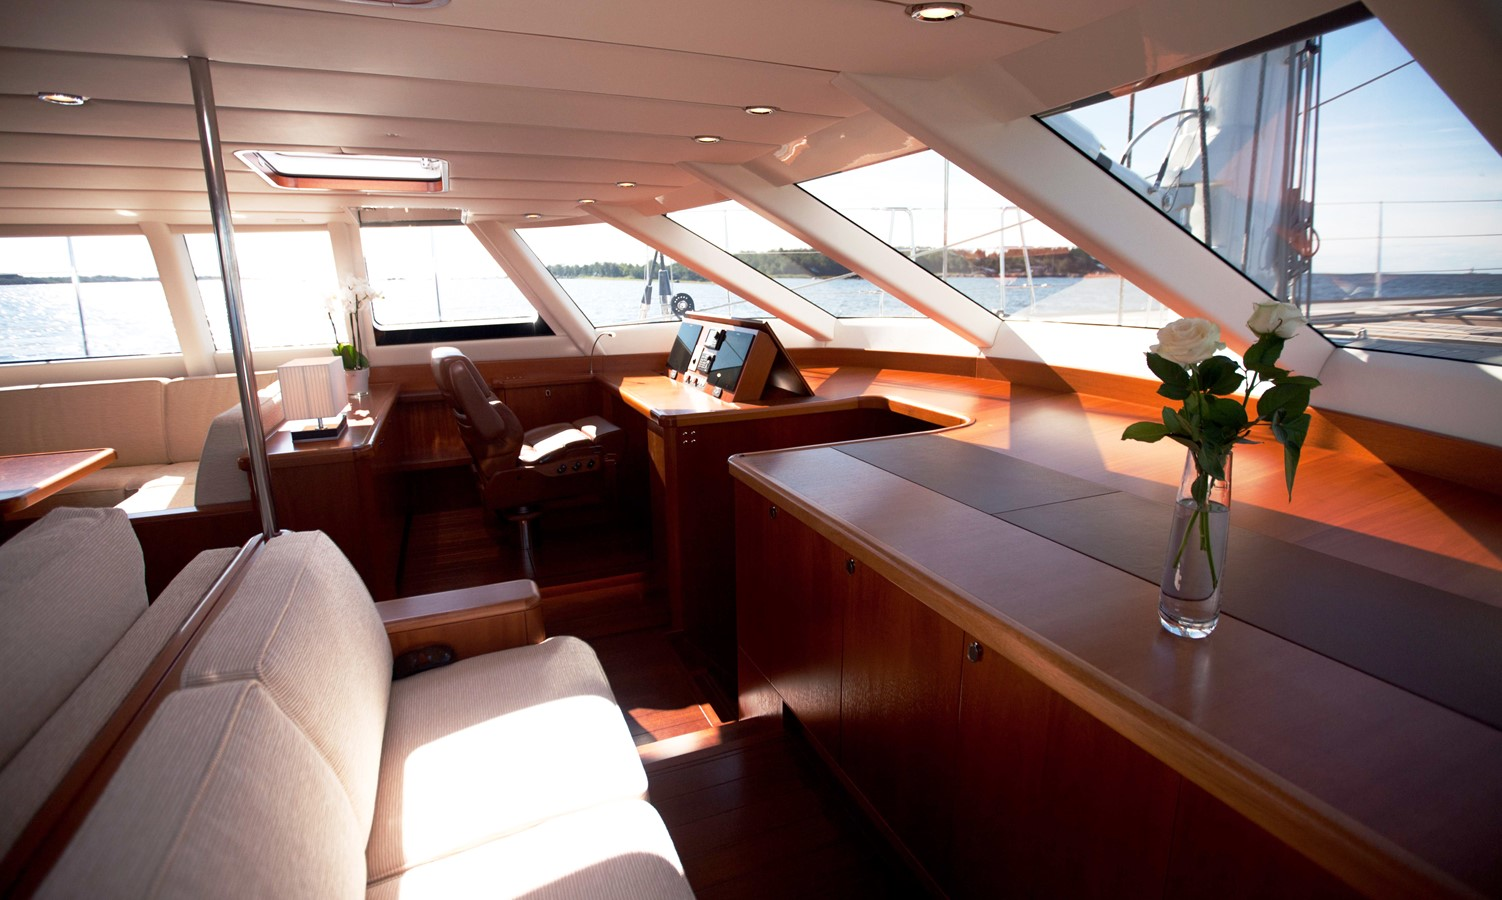 2014 NAUTOR'S SWAN  Performance Sailboat 1768976